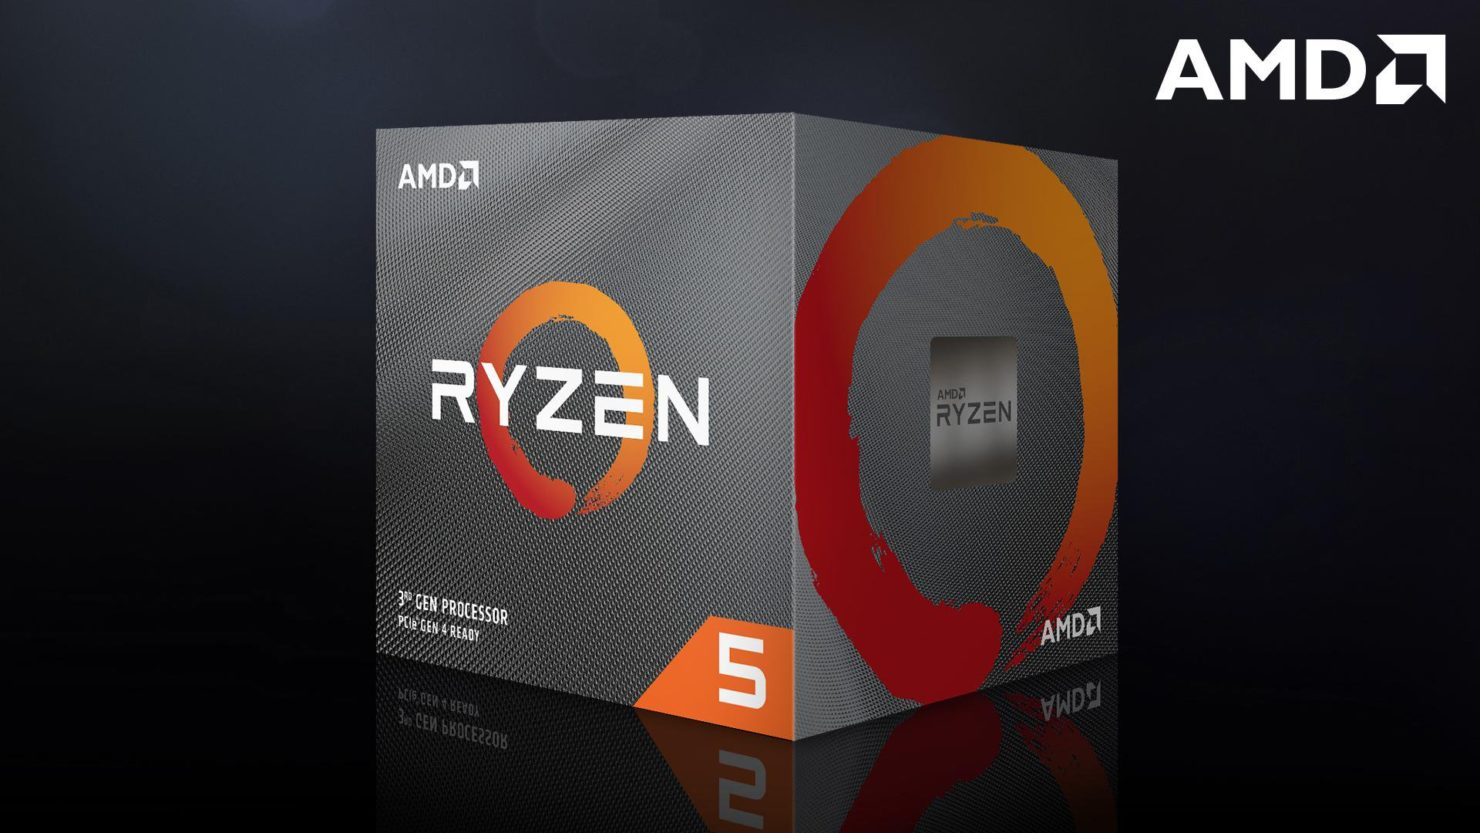 the-ryzen-5-3500x-is-currently-the-cheapest-amd-6-core-desktop-cpu-you-can-buy-for-under-$200-us